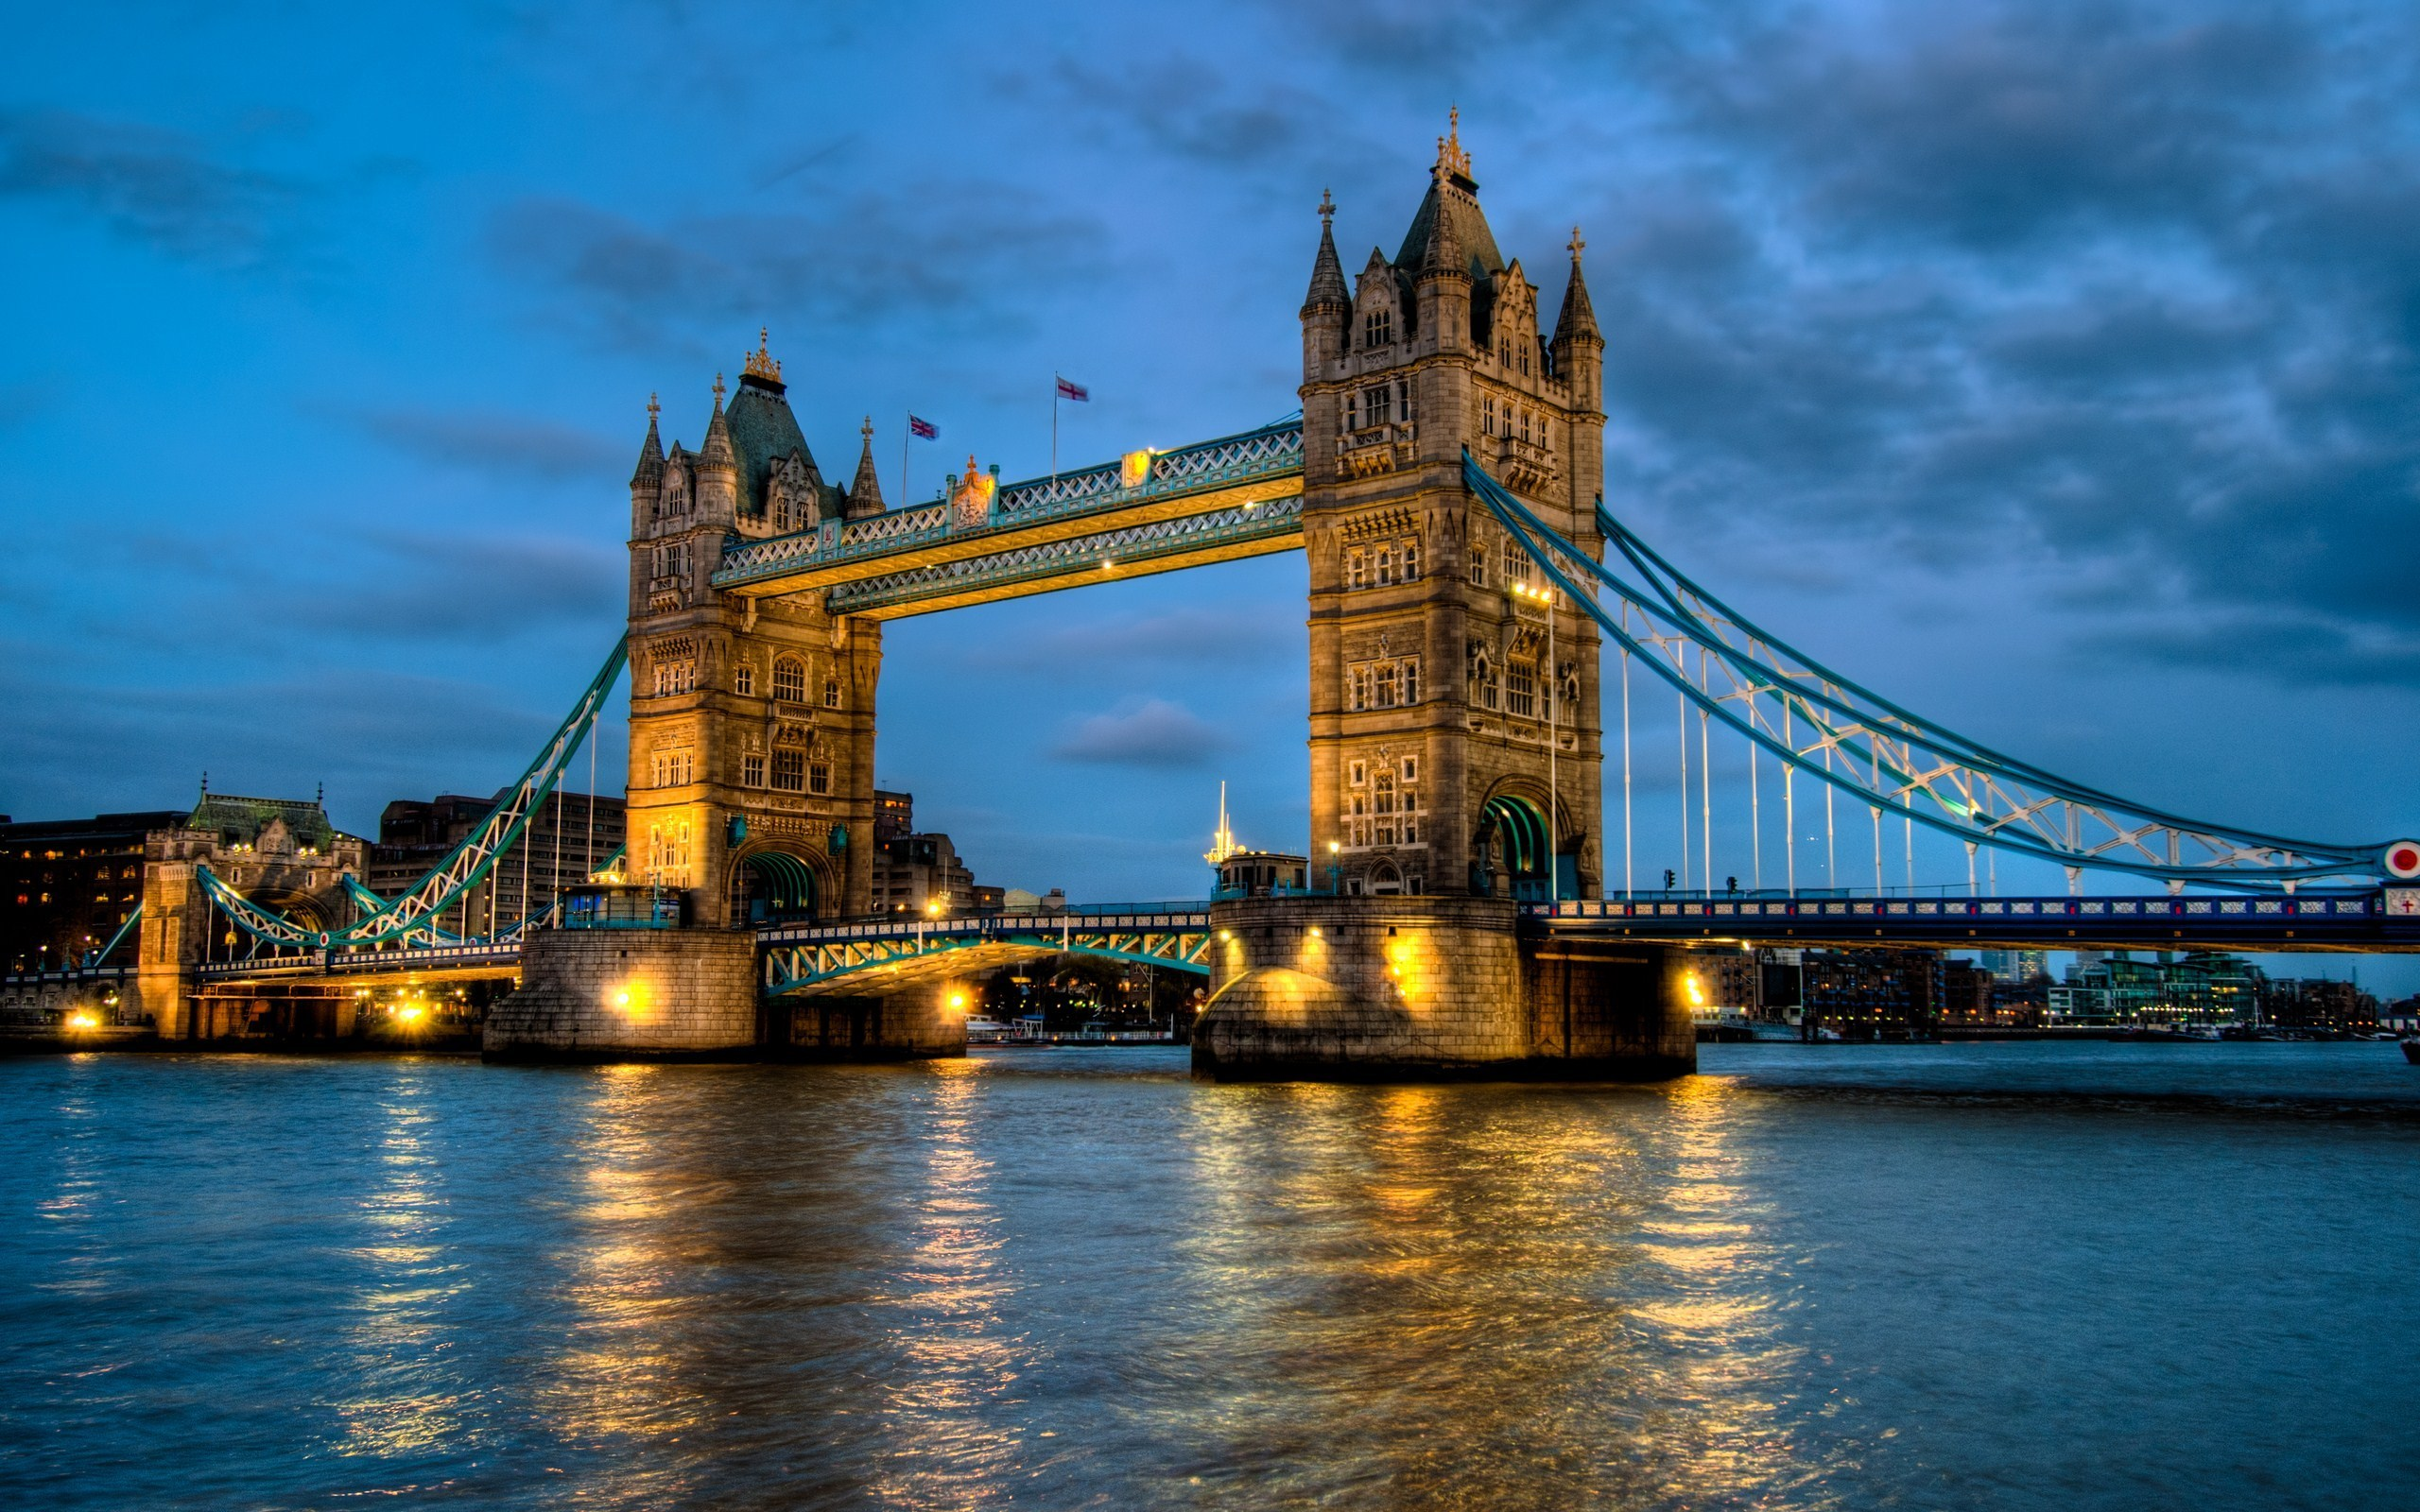 Tower Bridge Superb Wallpaper   Travel HD Wallpapers 2560x1600